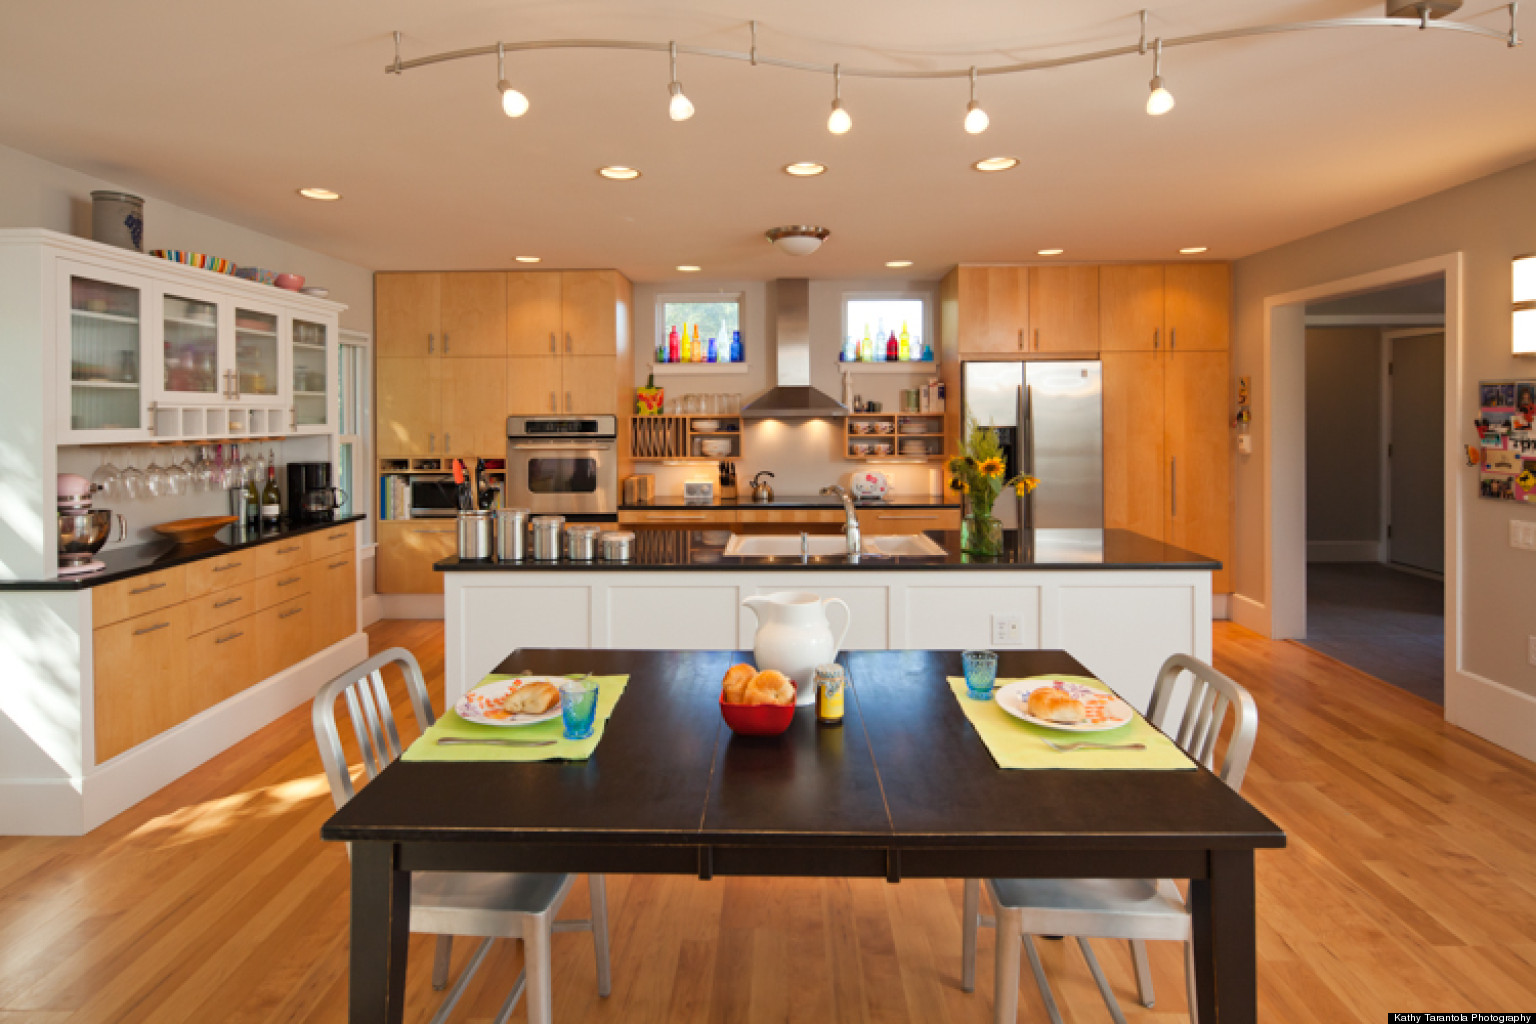 Multigenerational Homes Benefit From Accessible Design The